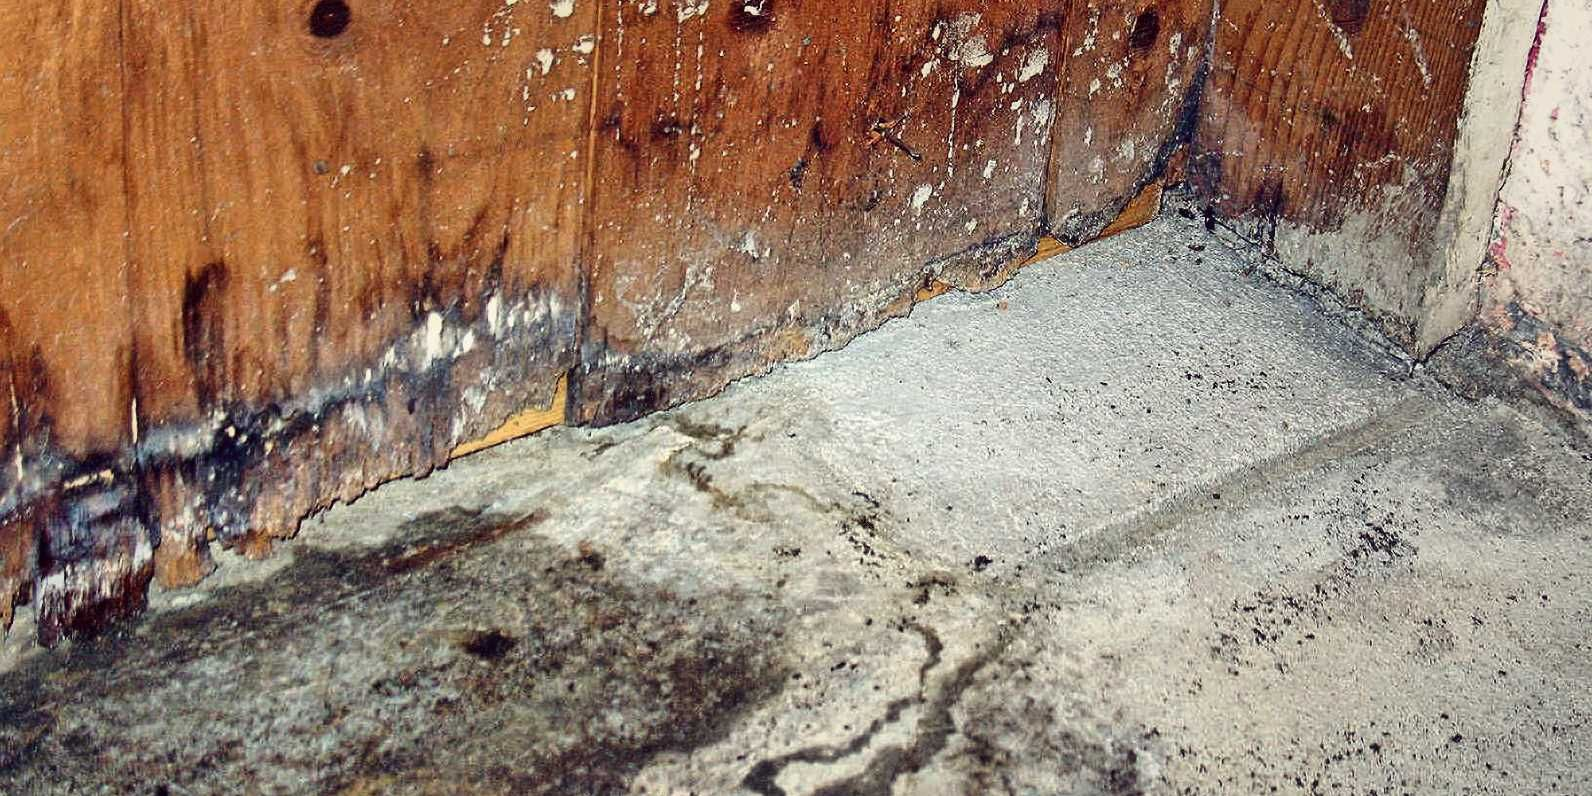 How To Handle A Sewer Backup in Your Basement Springfield